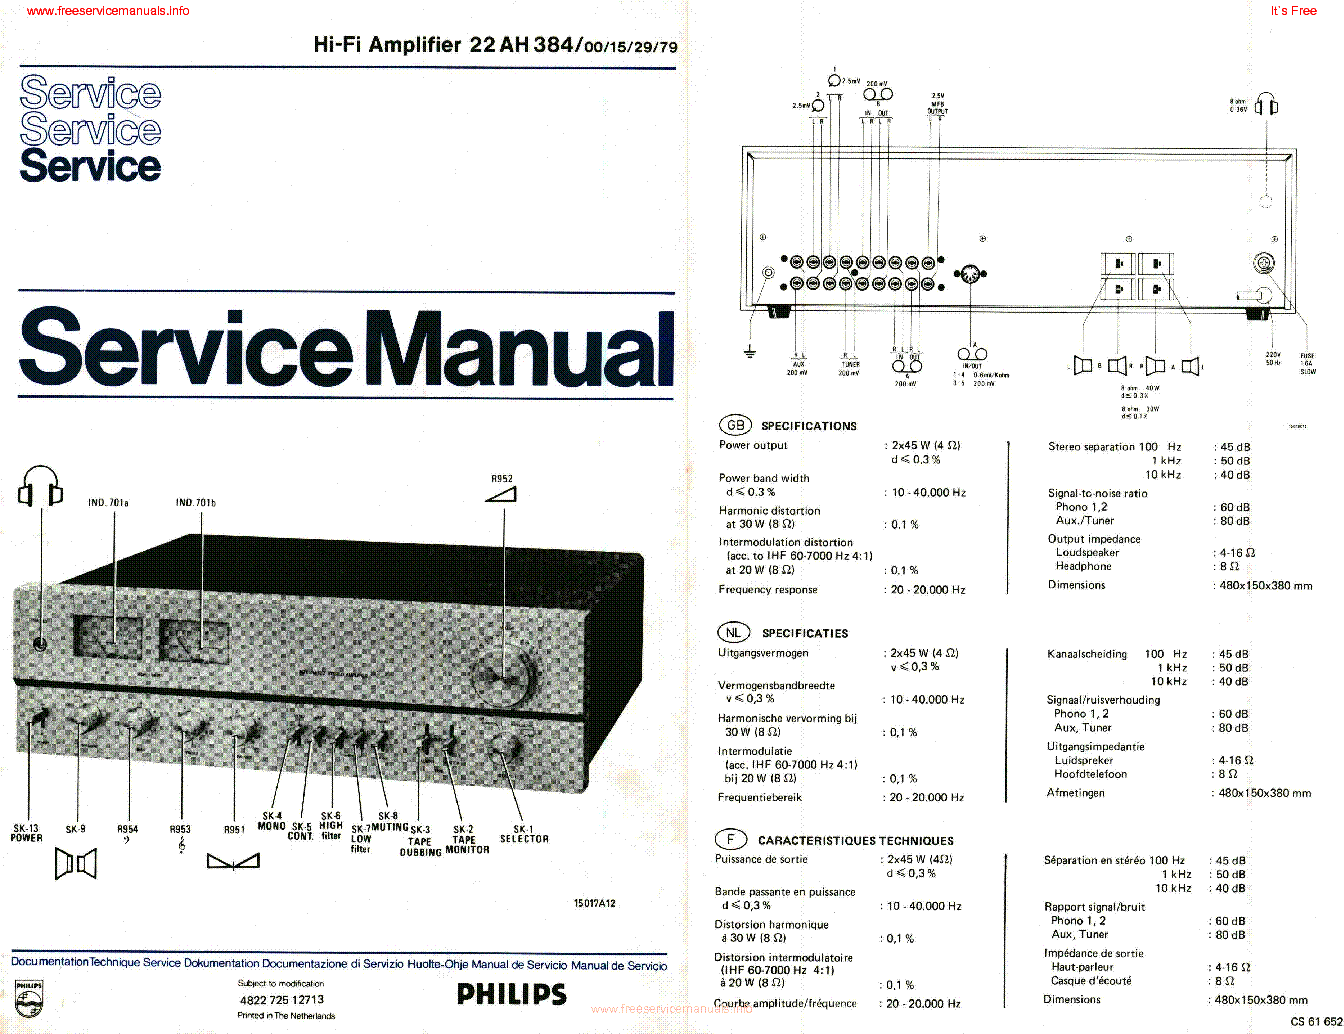 Philips Dvd 640 Power Supply Service Manual Free Download